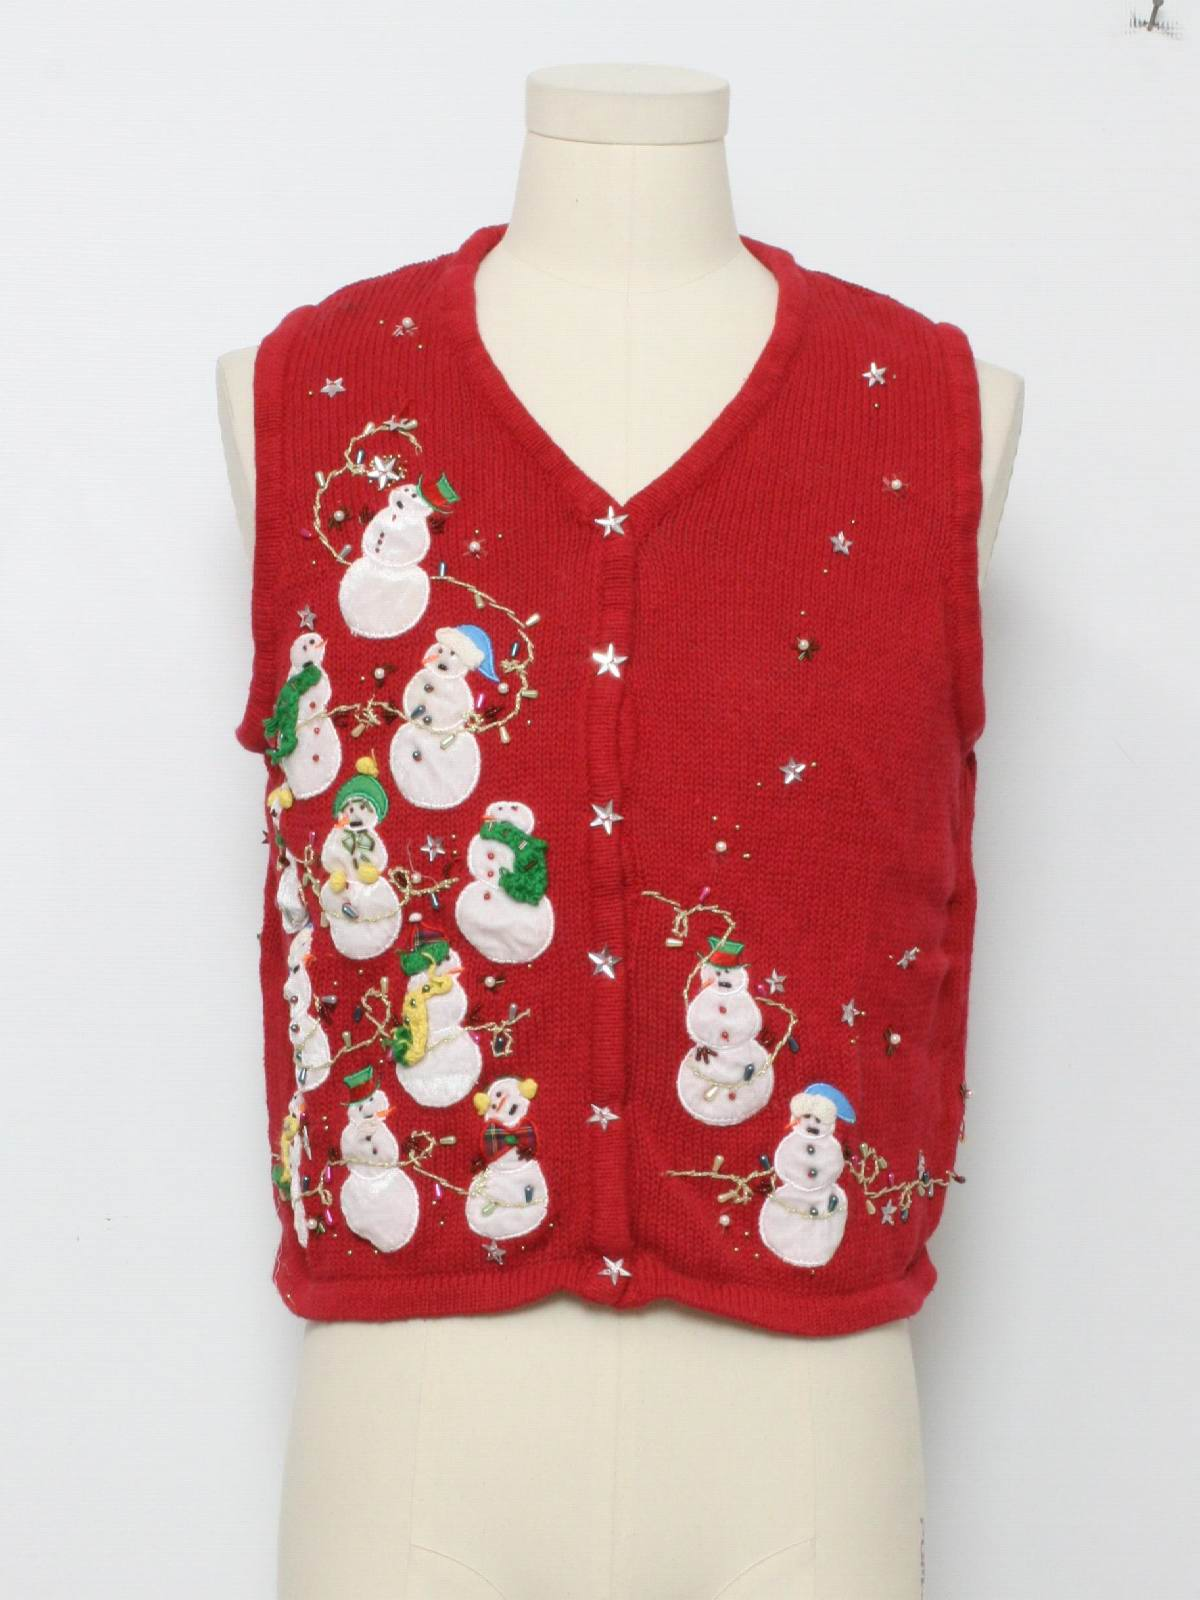 Womens Ugly Christmas Sweater Vest: -Care Label Only- Petite Womens